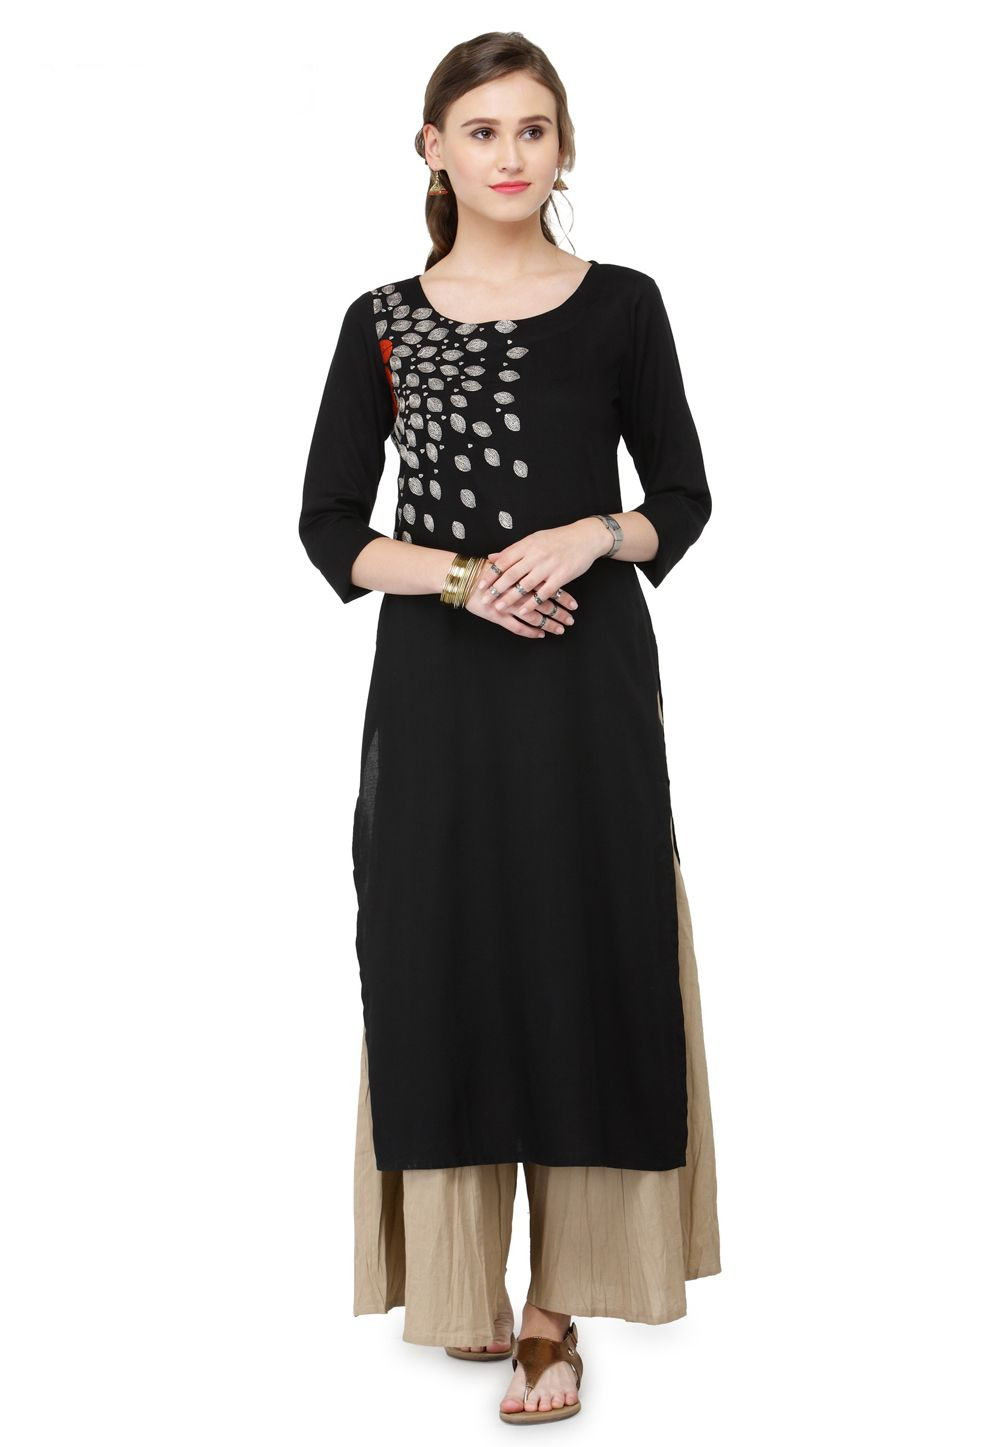 2b4d930840 Shop Black Viscose Readymade Kurti 156292 online at best price from vast  collection of designer kurti at Indianclothstore.com.